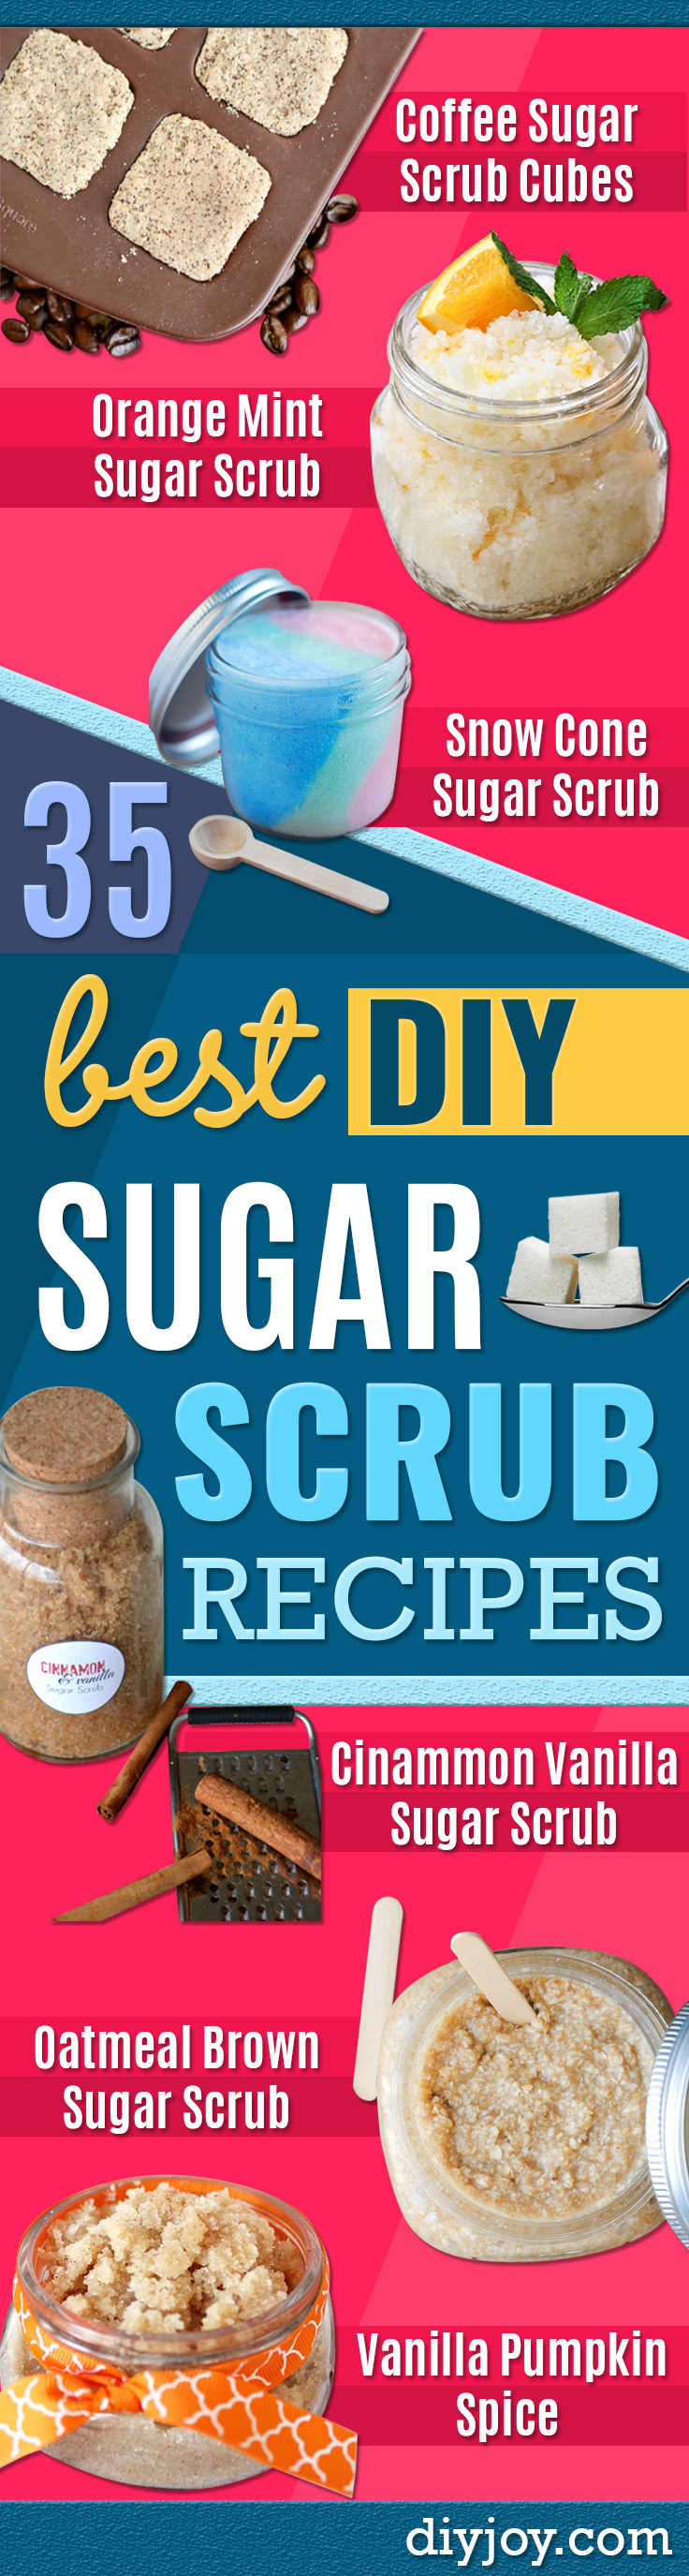 DIY Sugar Scrub Recipes -diy christmas gifts- Easy and Quick Beauty Products To Make at Home - Cool and Cheap DIY Gift Ideas for Homemade Presents Women, Girls and Teens Love - Natural Recipe Ideas for Making Sugar Scrub With Step by Step Tutorials